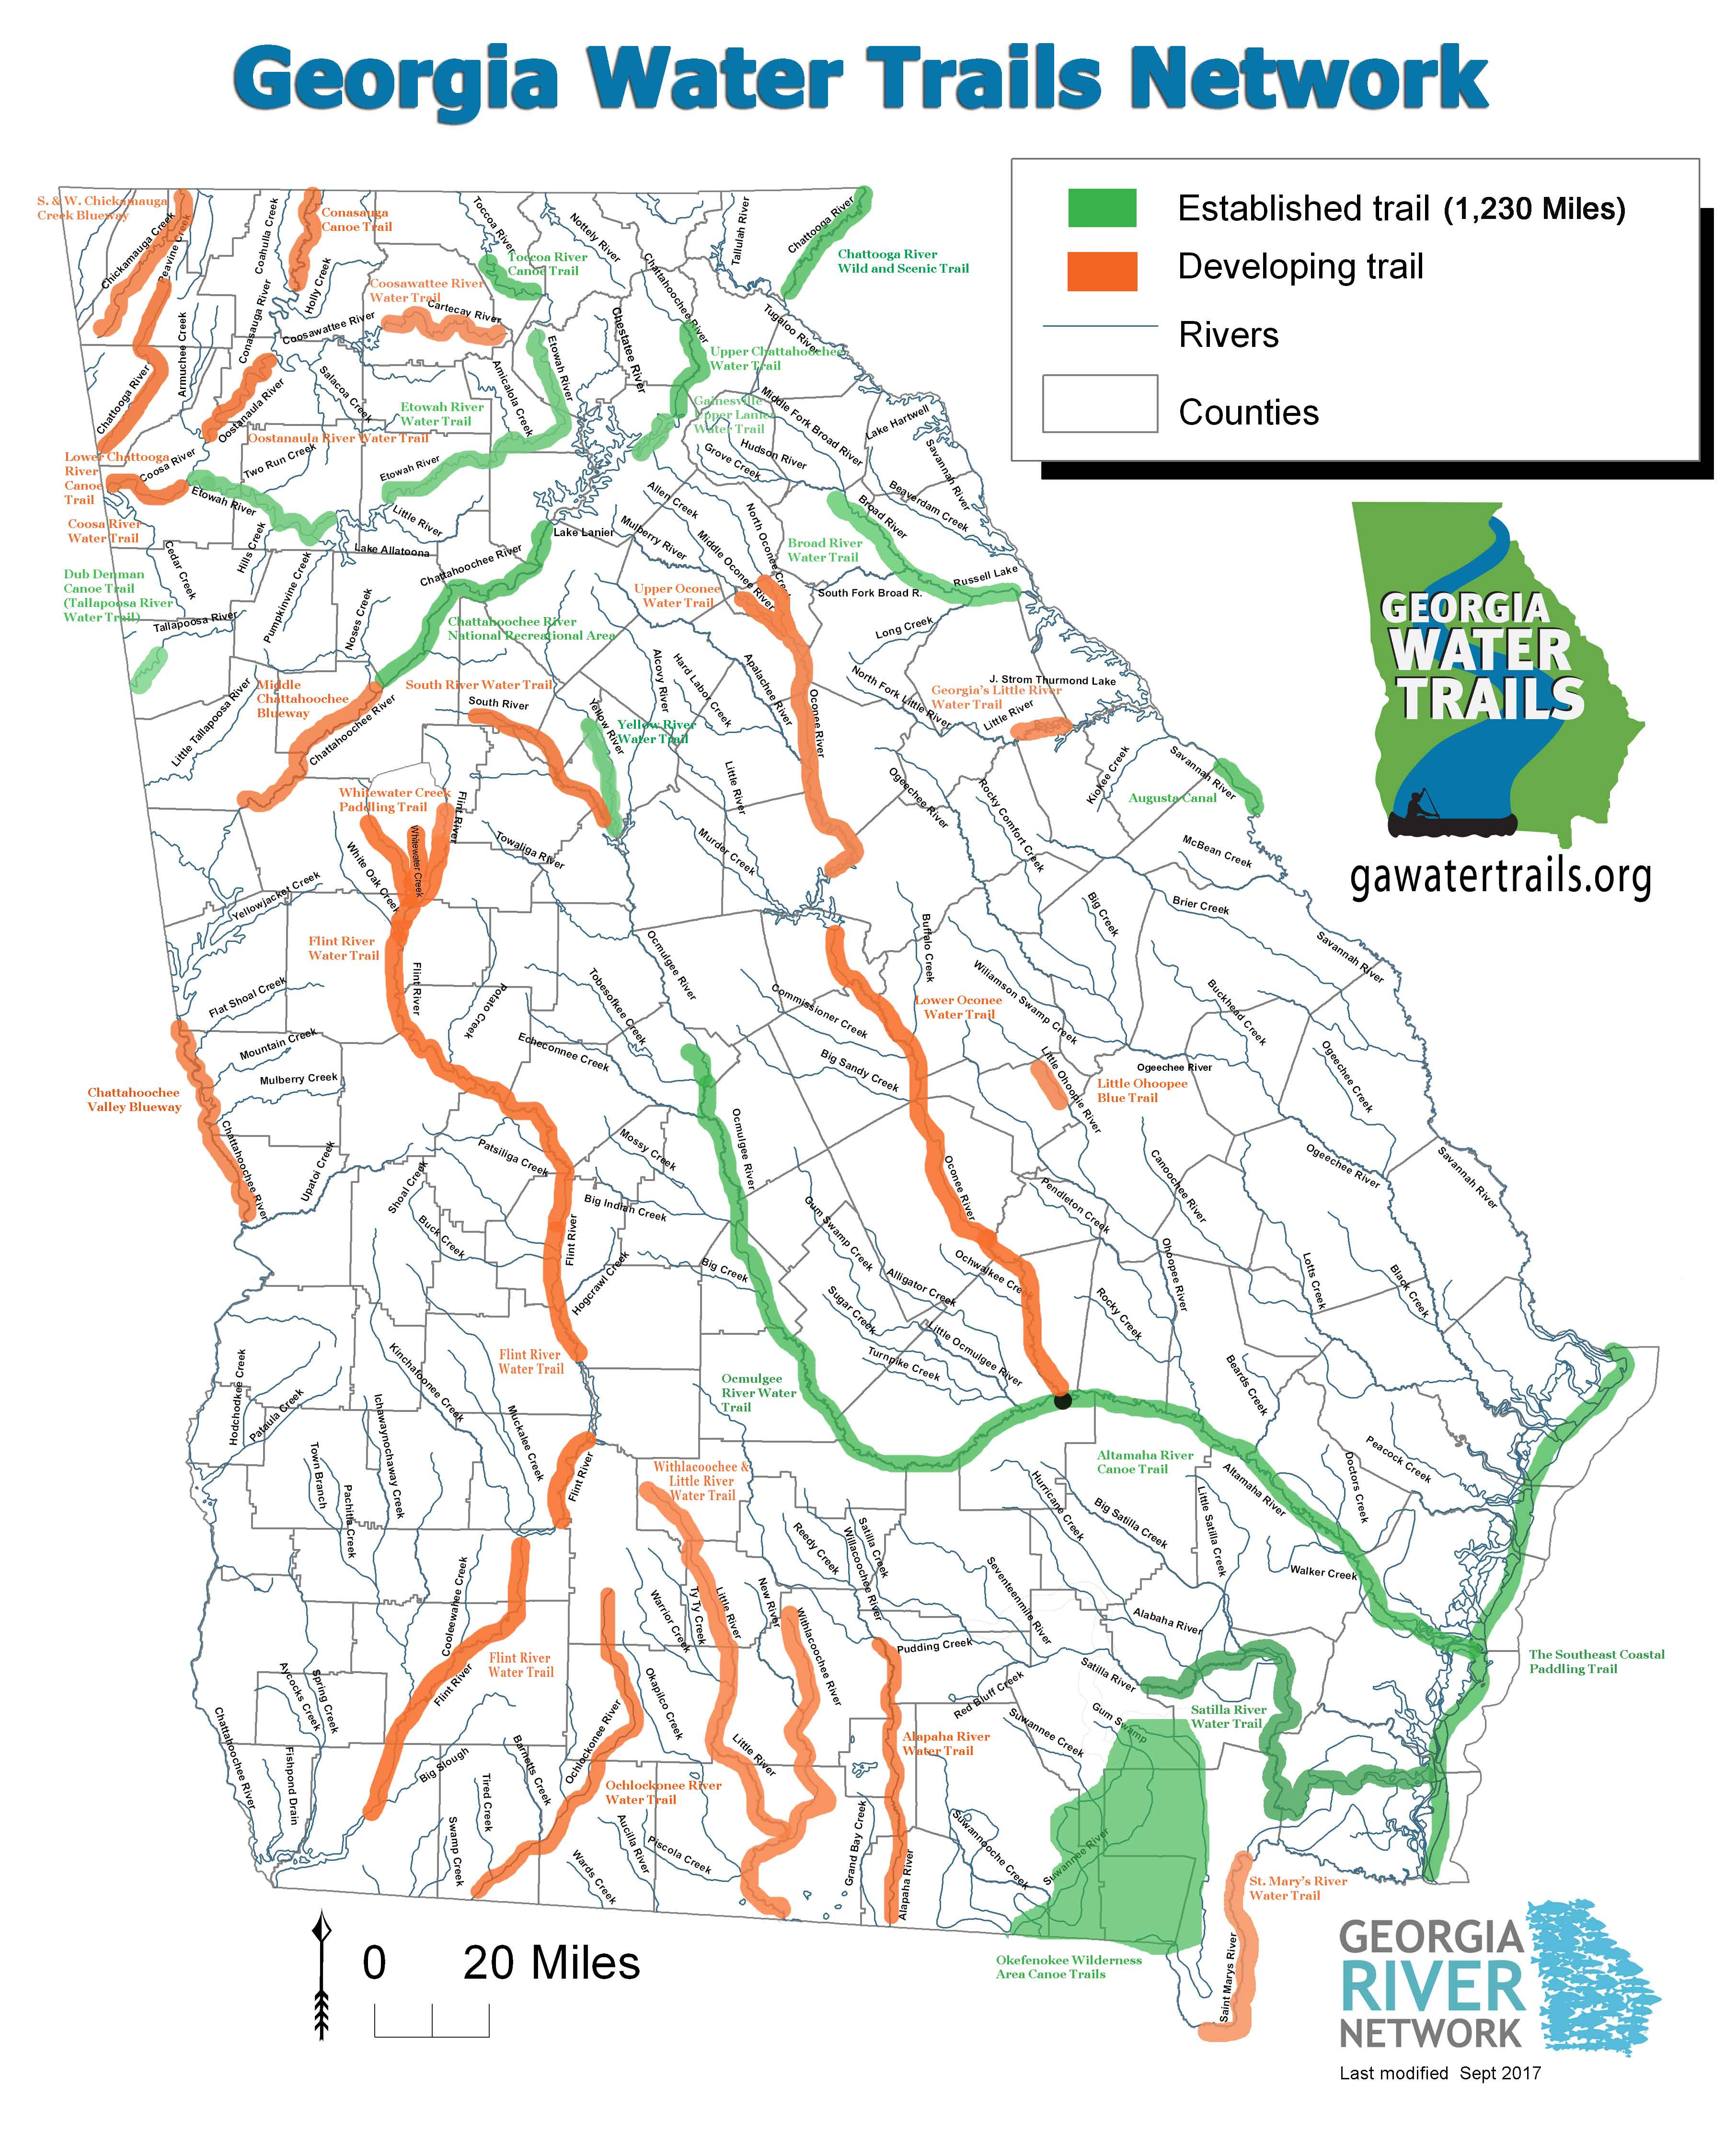 Georgia Water Trails Network